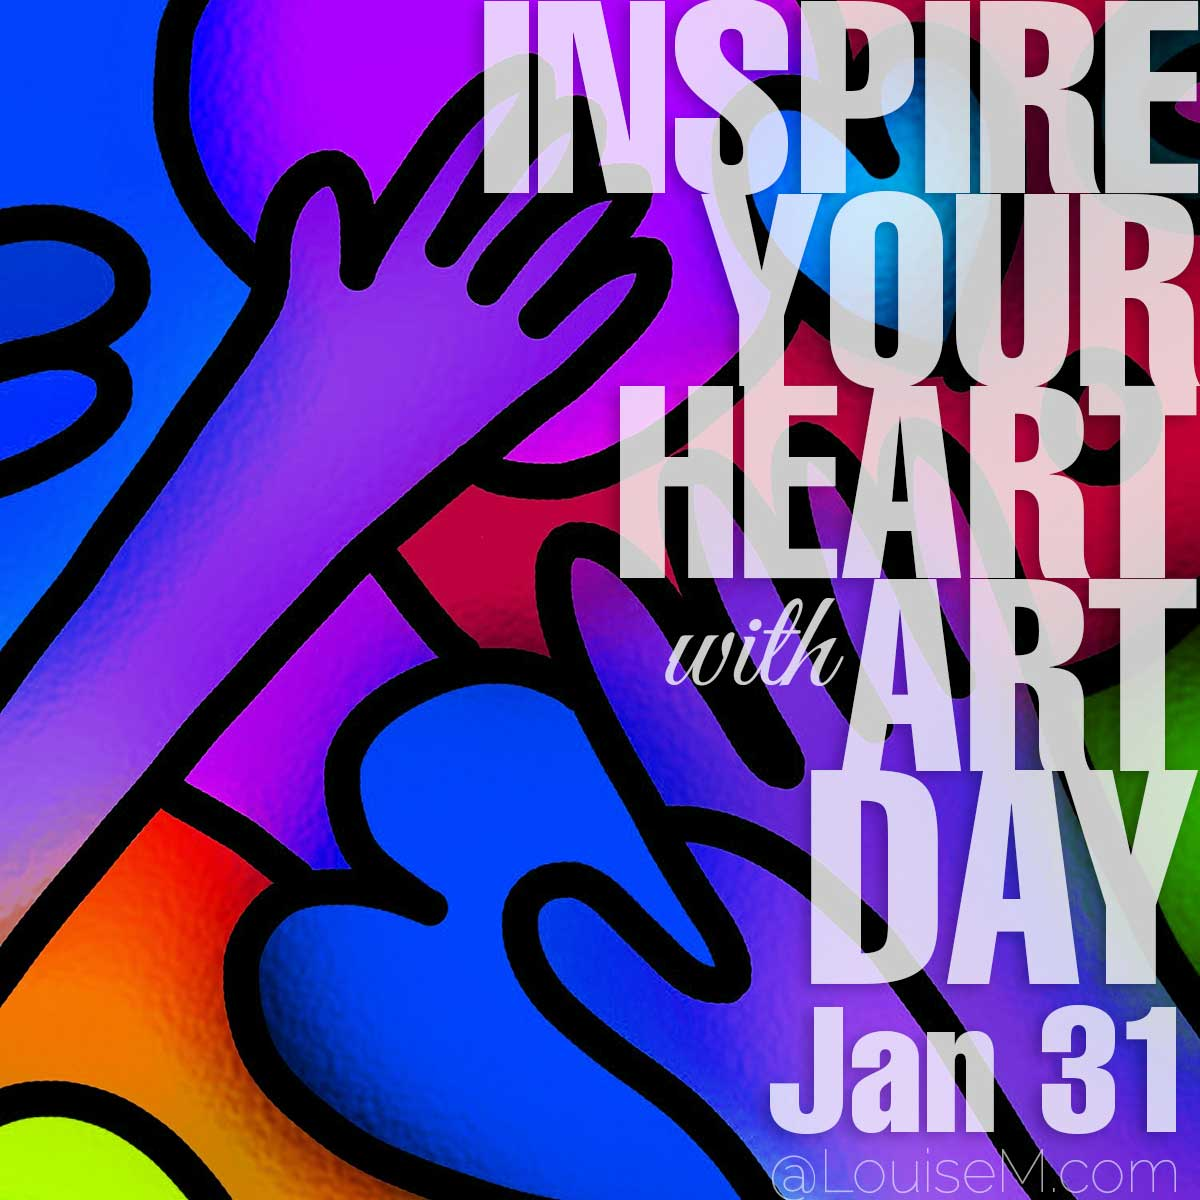 Inspire Your Heart With Art Day text over artsy background.